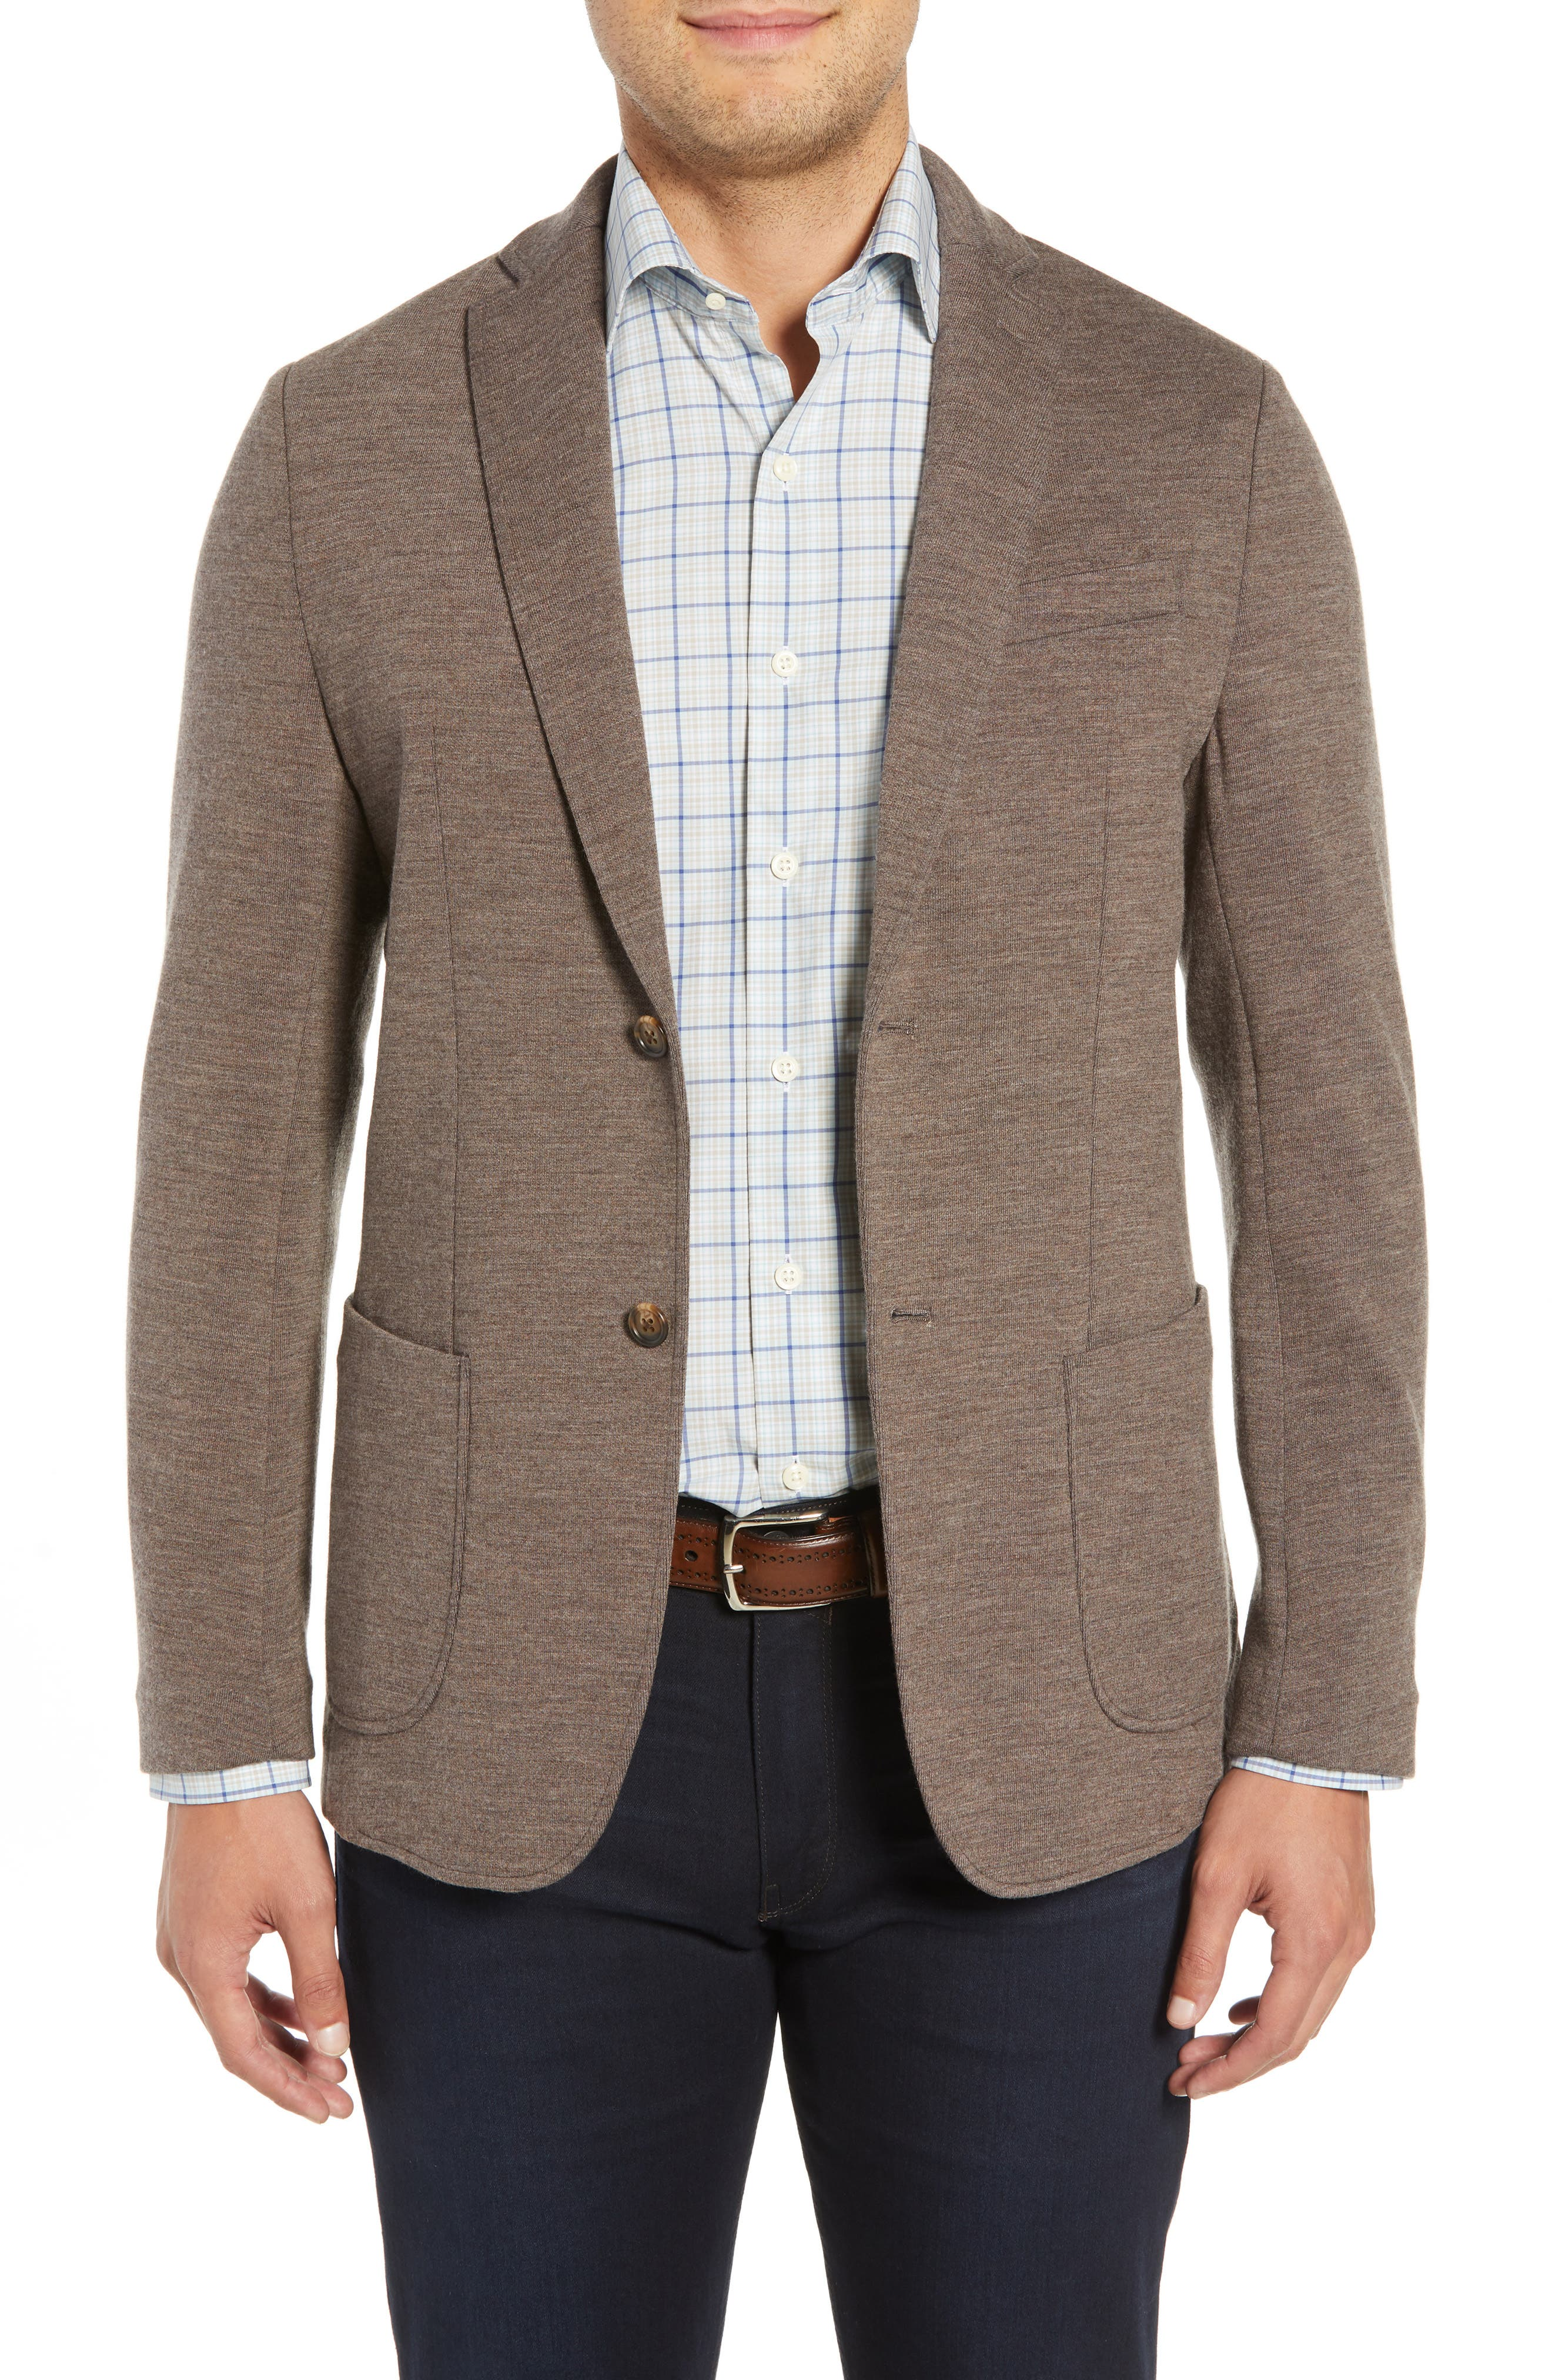 Crown Comfort Knit Blazer,                             Main thumbnail 1, color,                             COBBLESTONE